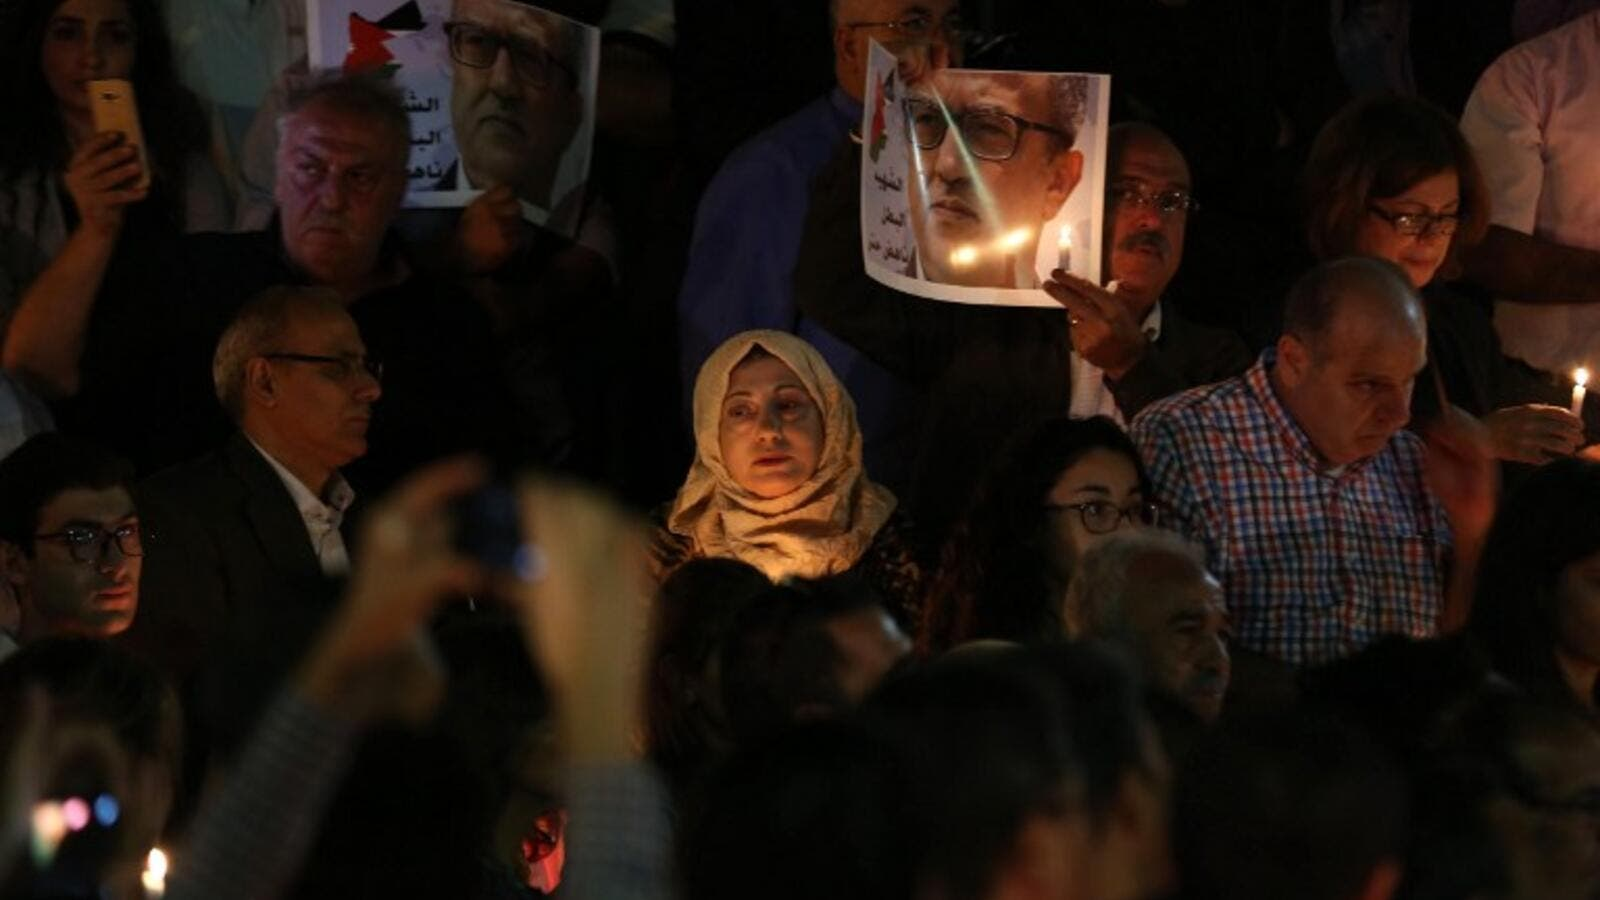 Jordanians gather at the site where prominent Jordanian writer Nahed Hattar was shot dead the previous day outside an Amman court, during a vigil on September 26, 2016. (AFP/Khalil Mazraawi)